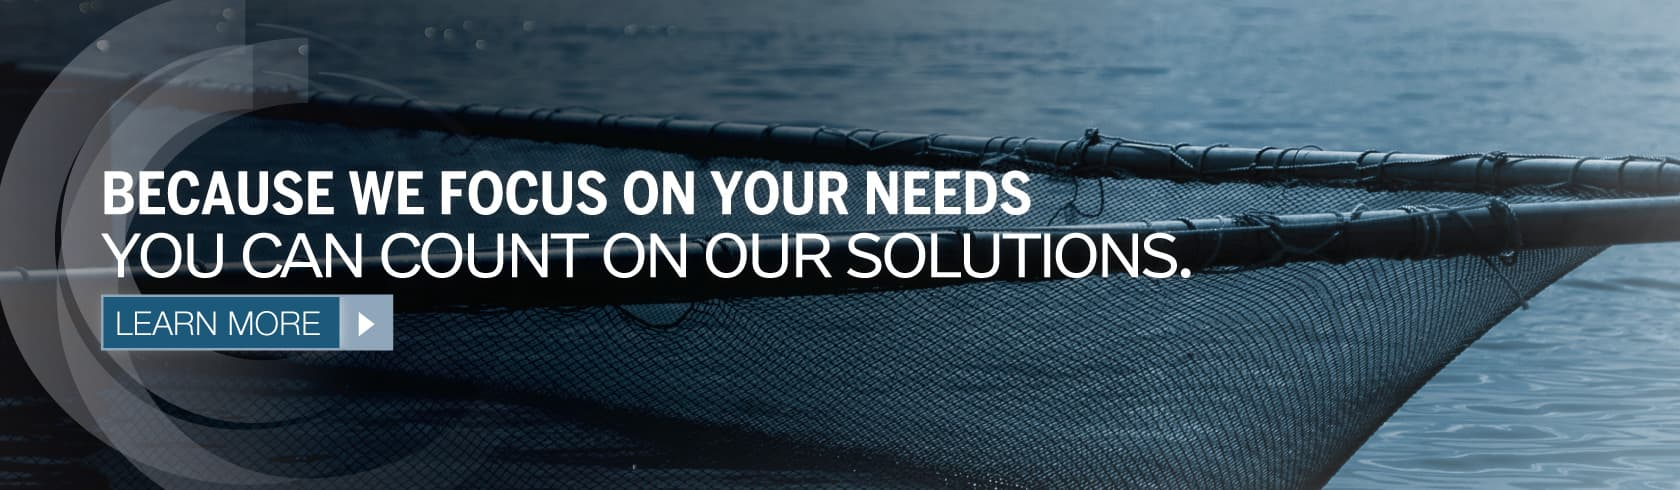 Because we focus on your needs, you can count on our solutions